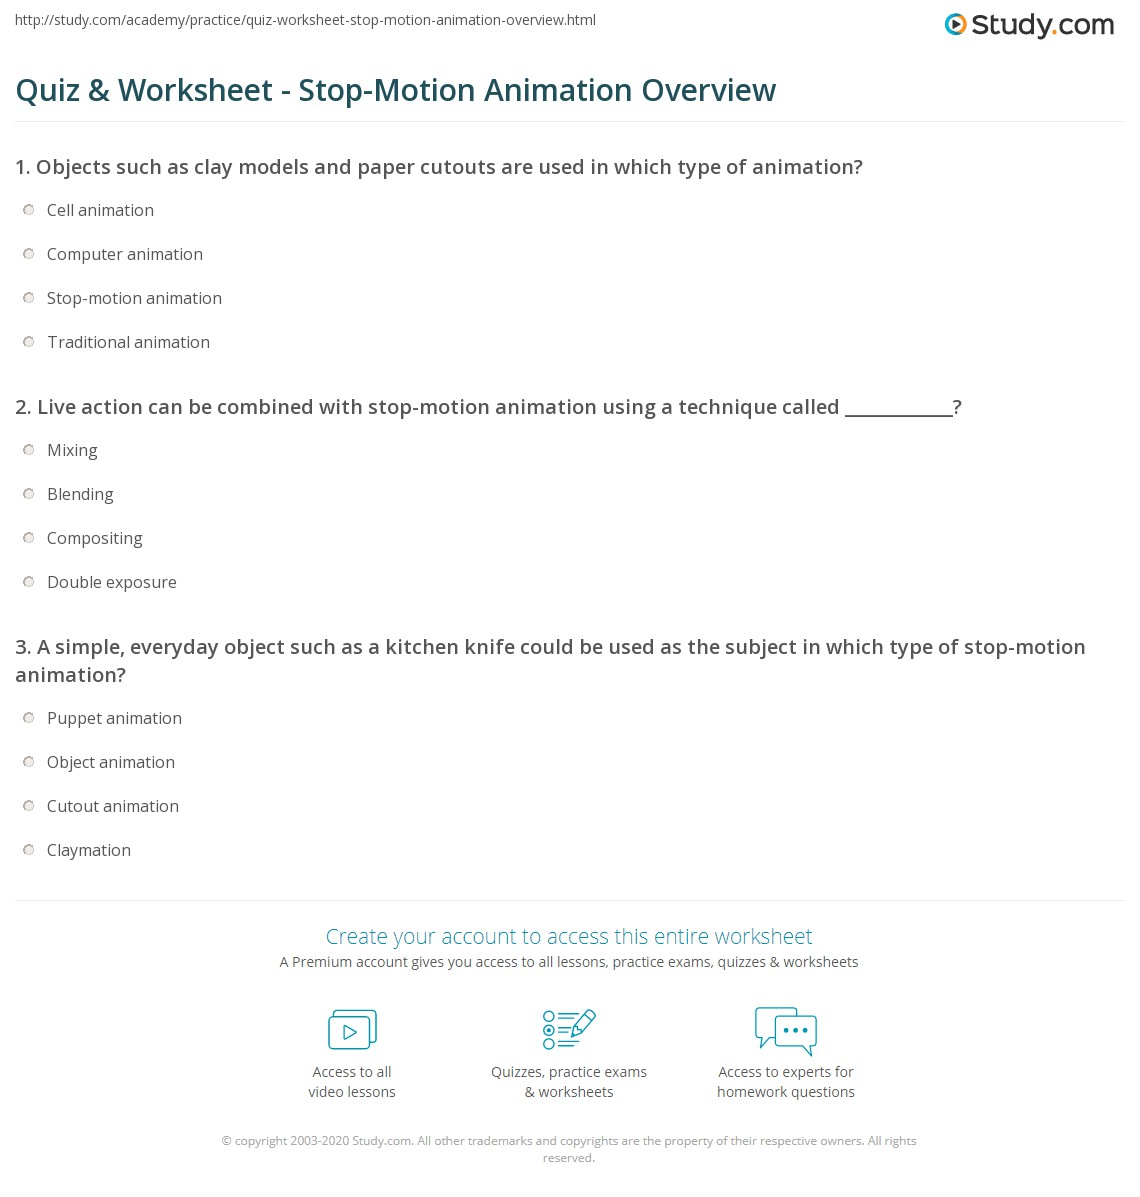 Quiz & Worksheet - Stop-Motion Animation Overview | Study.com